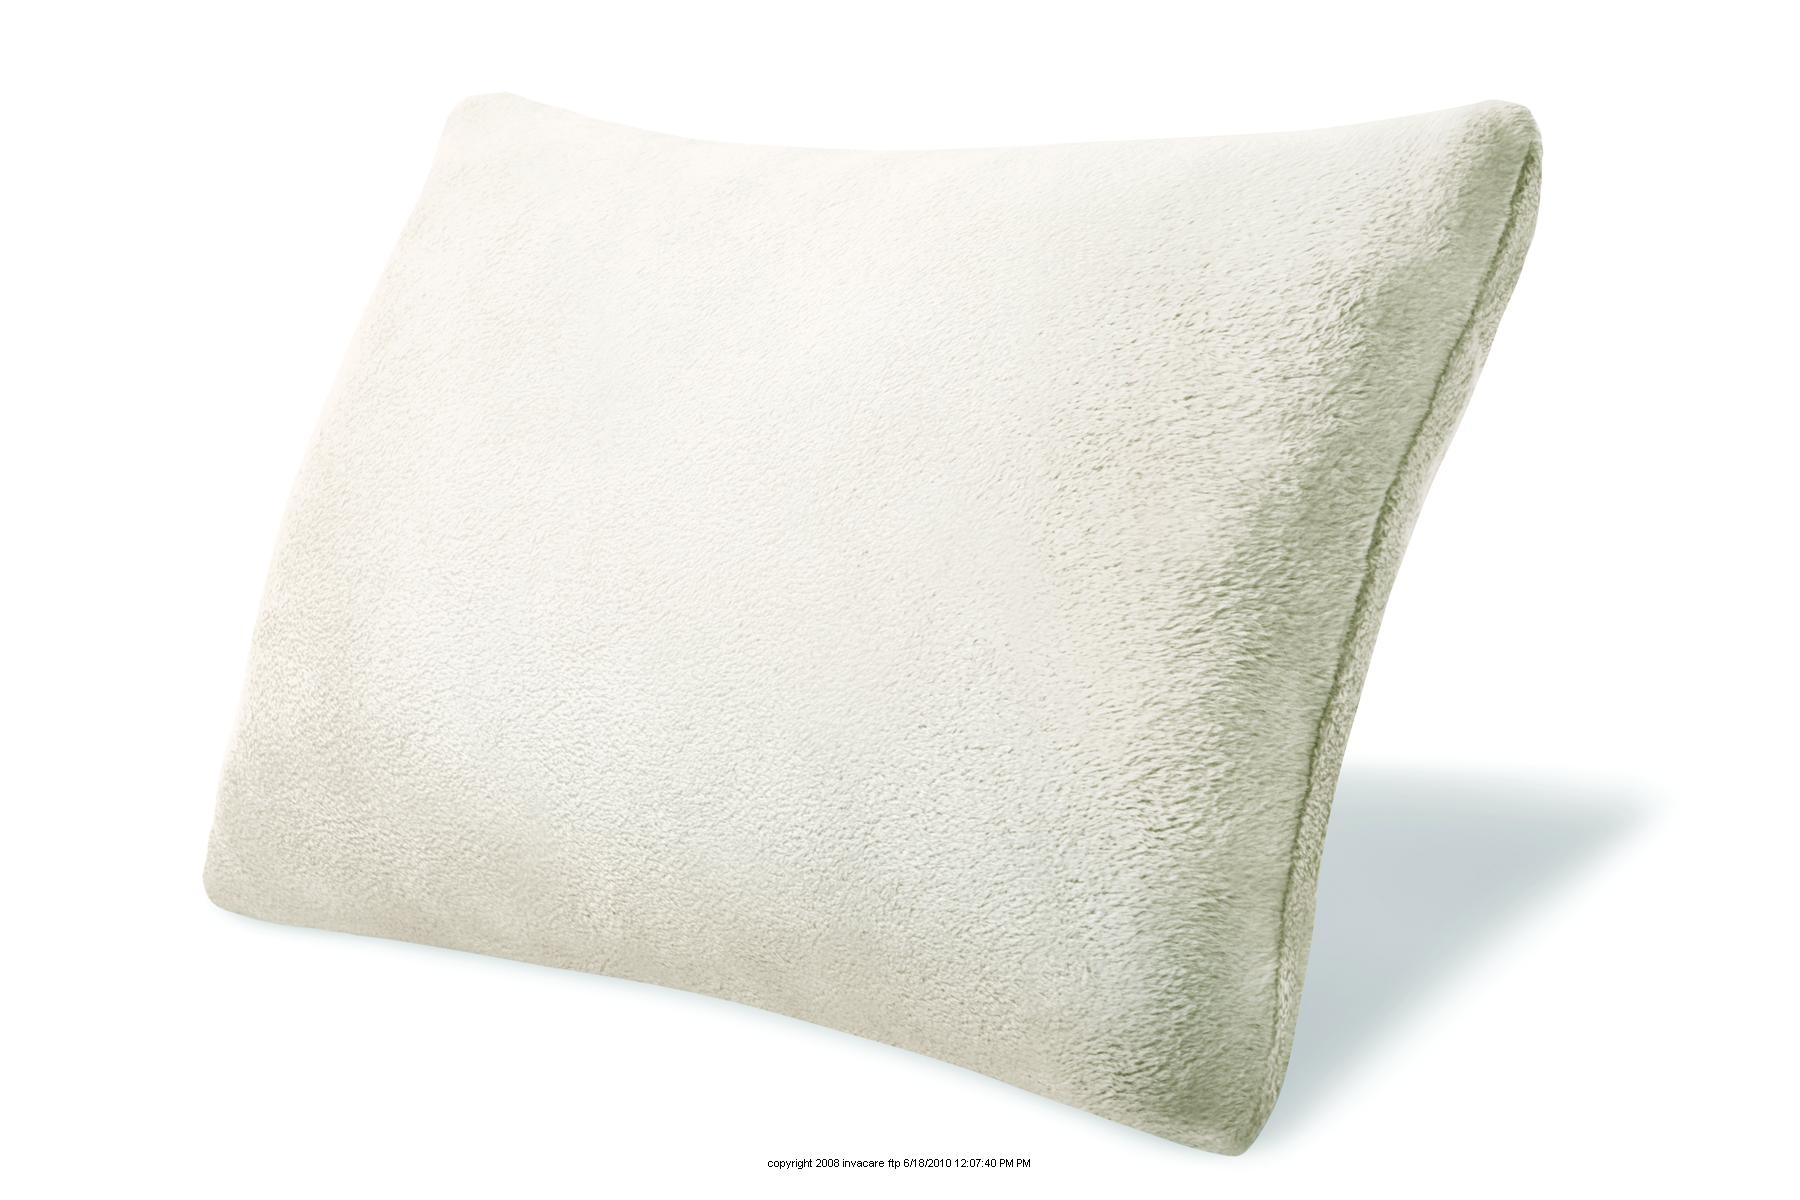 Obusforme Specialty Memory Foam Pillows, The Travel Pillow, (1 EACH)